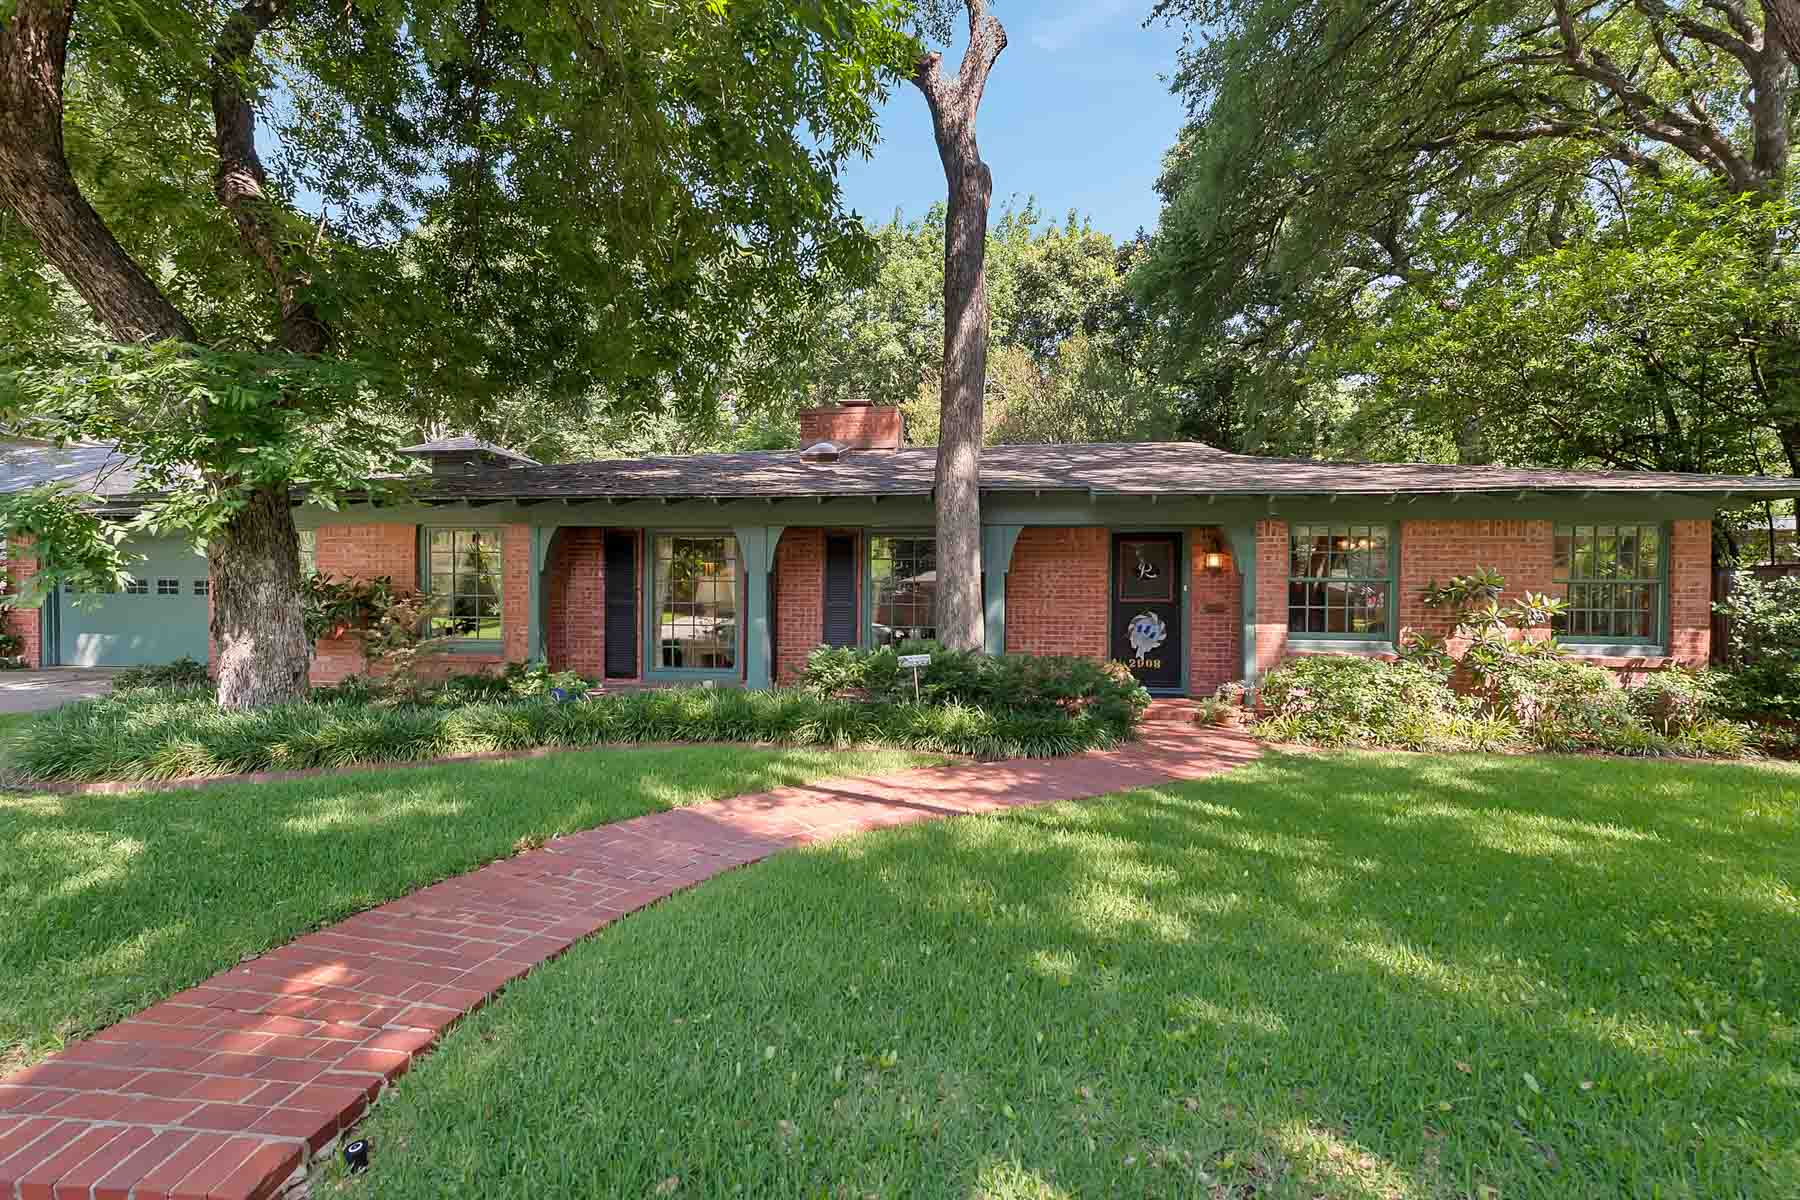 Single Family Home for Sale at Traditional, Mockingbird Lane 2908 Owenwood Drive Fort Worth, Texas, 76109 United States